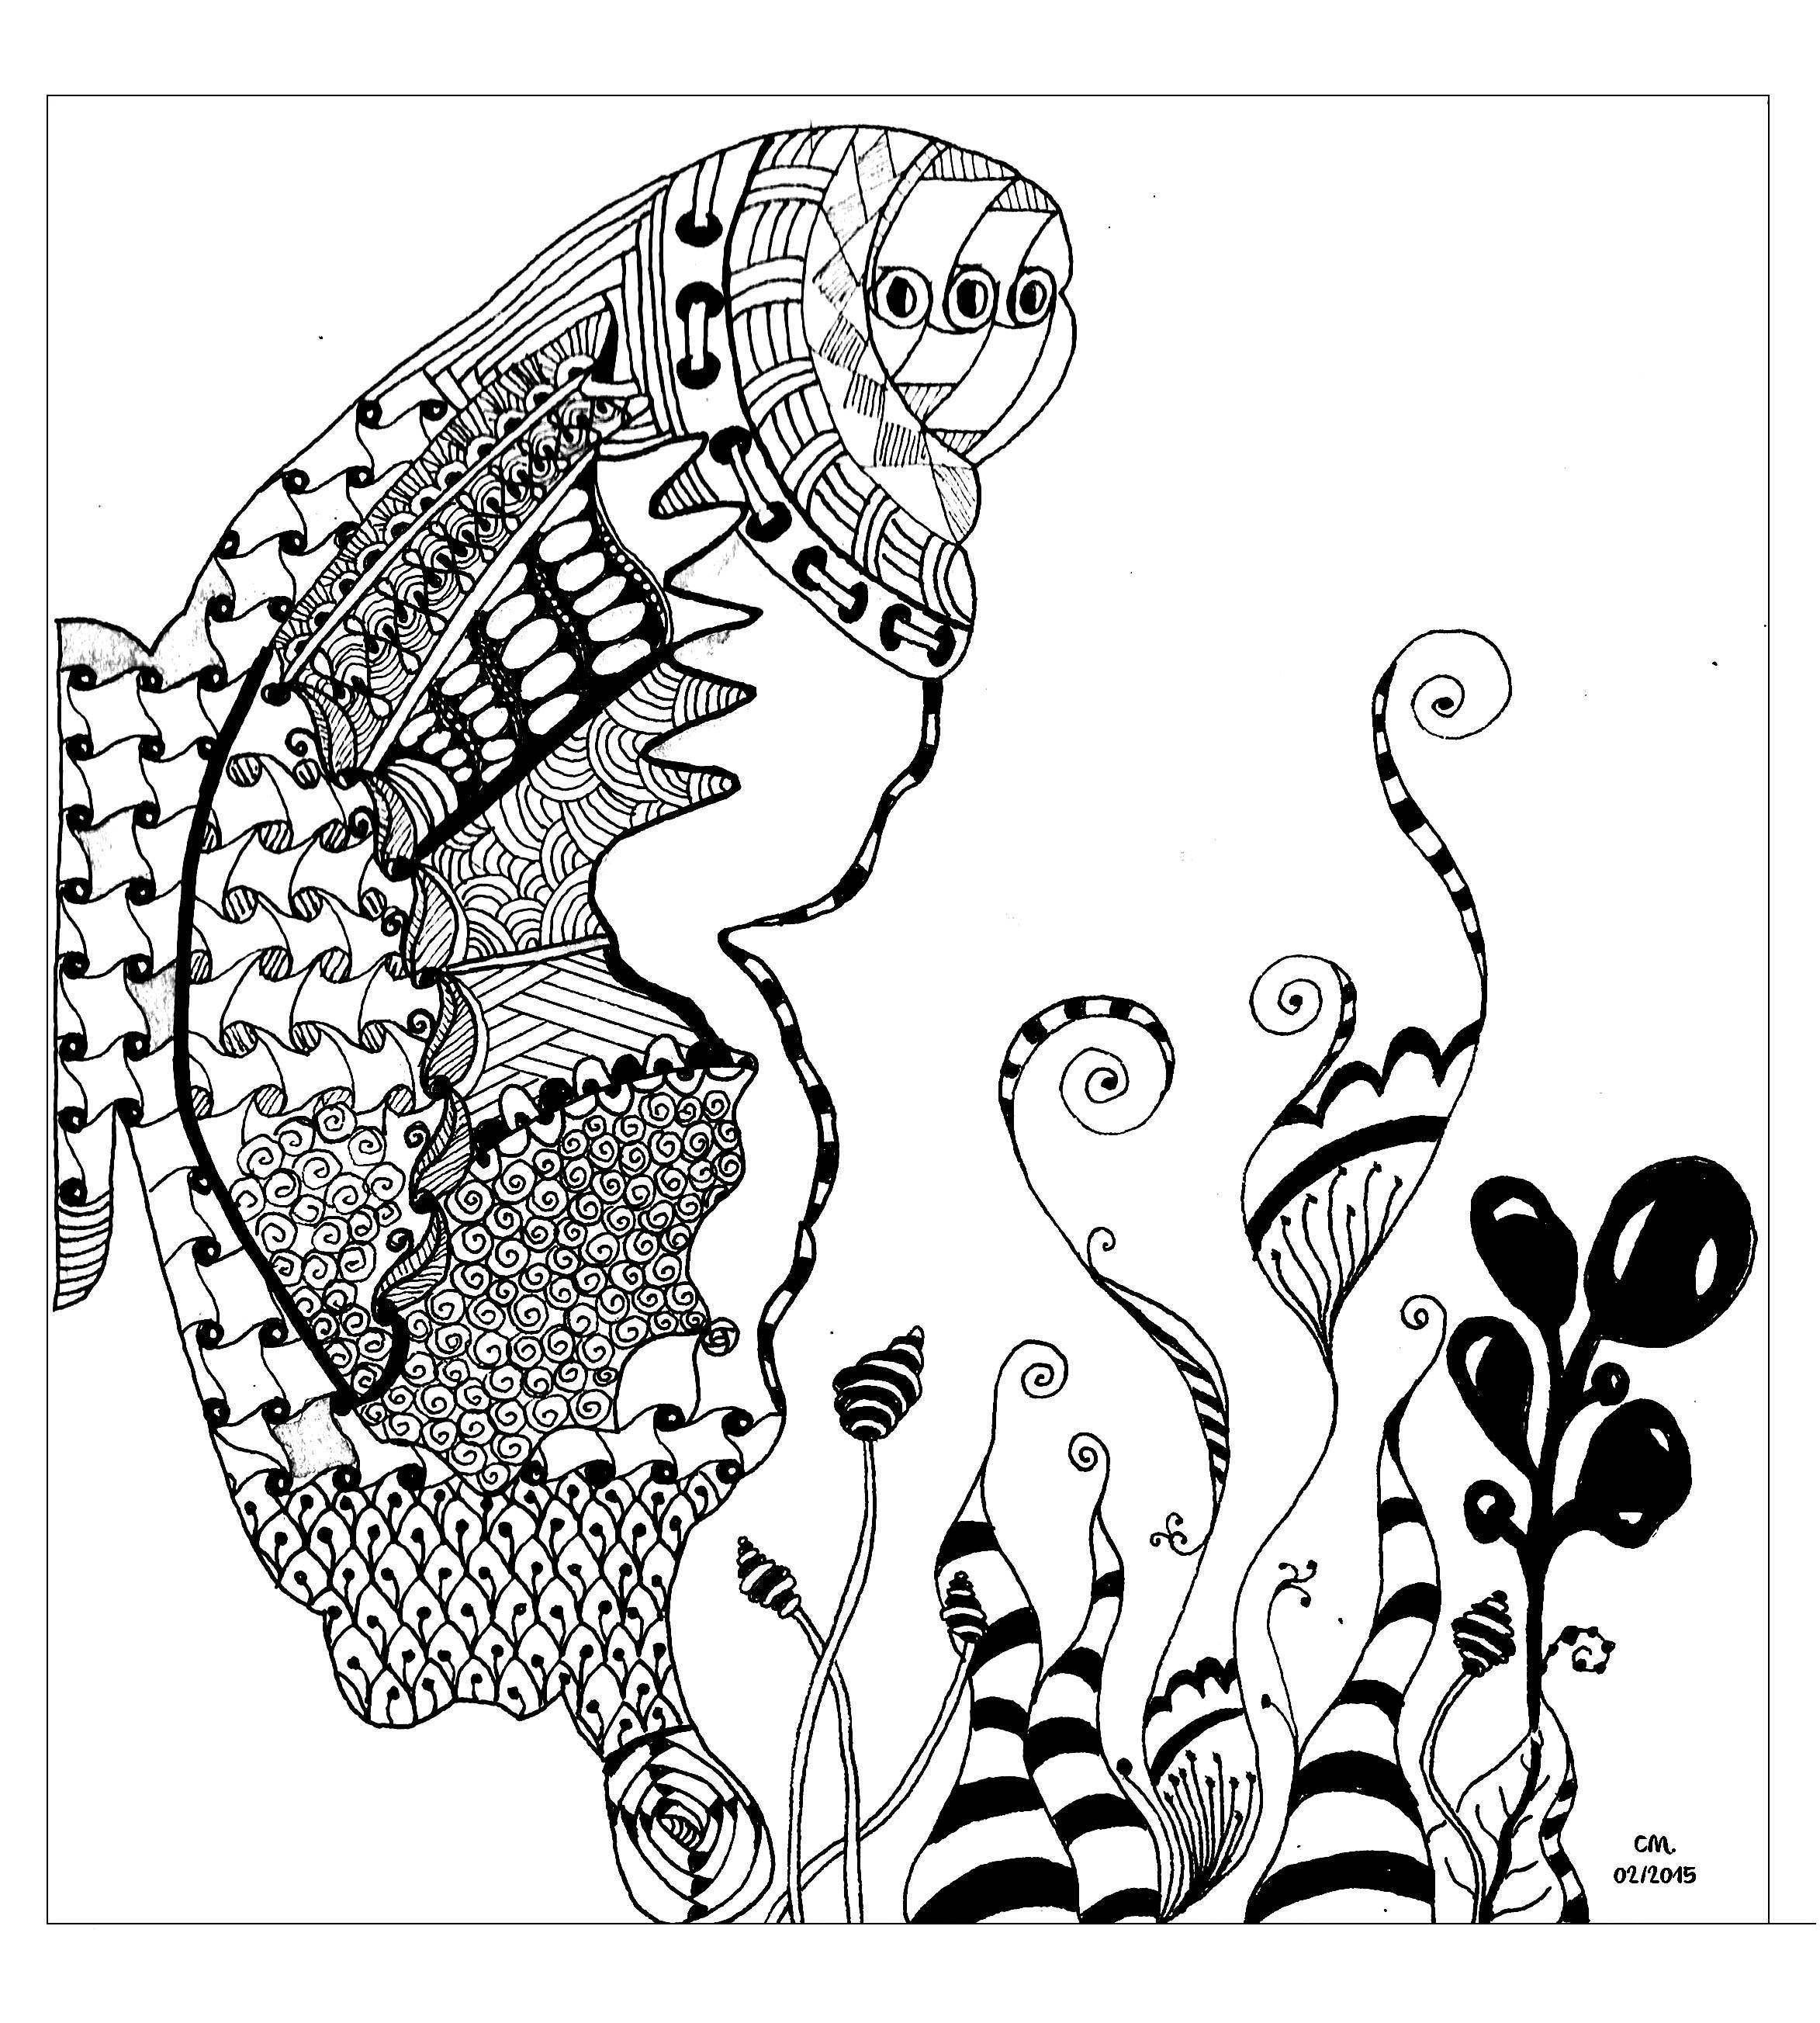 zentangle a colorier par cathym 43 coloriage adulte coloriages